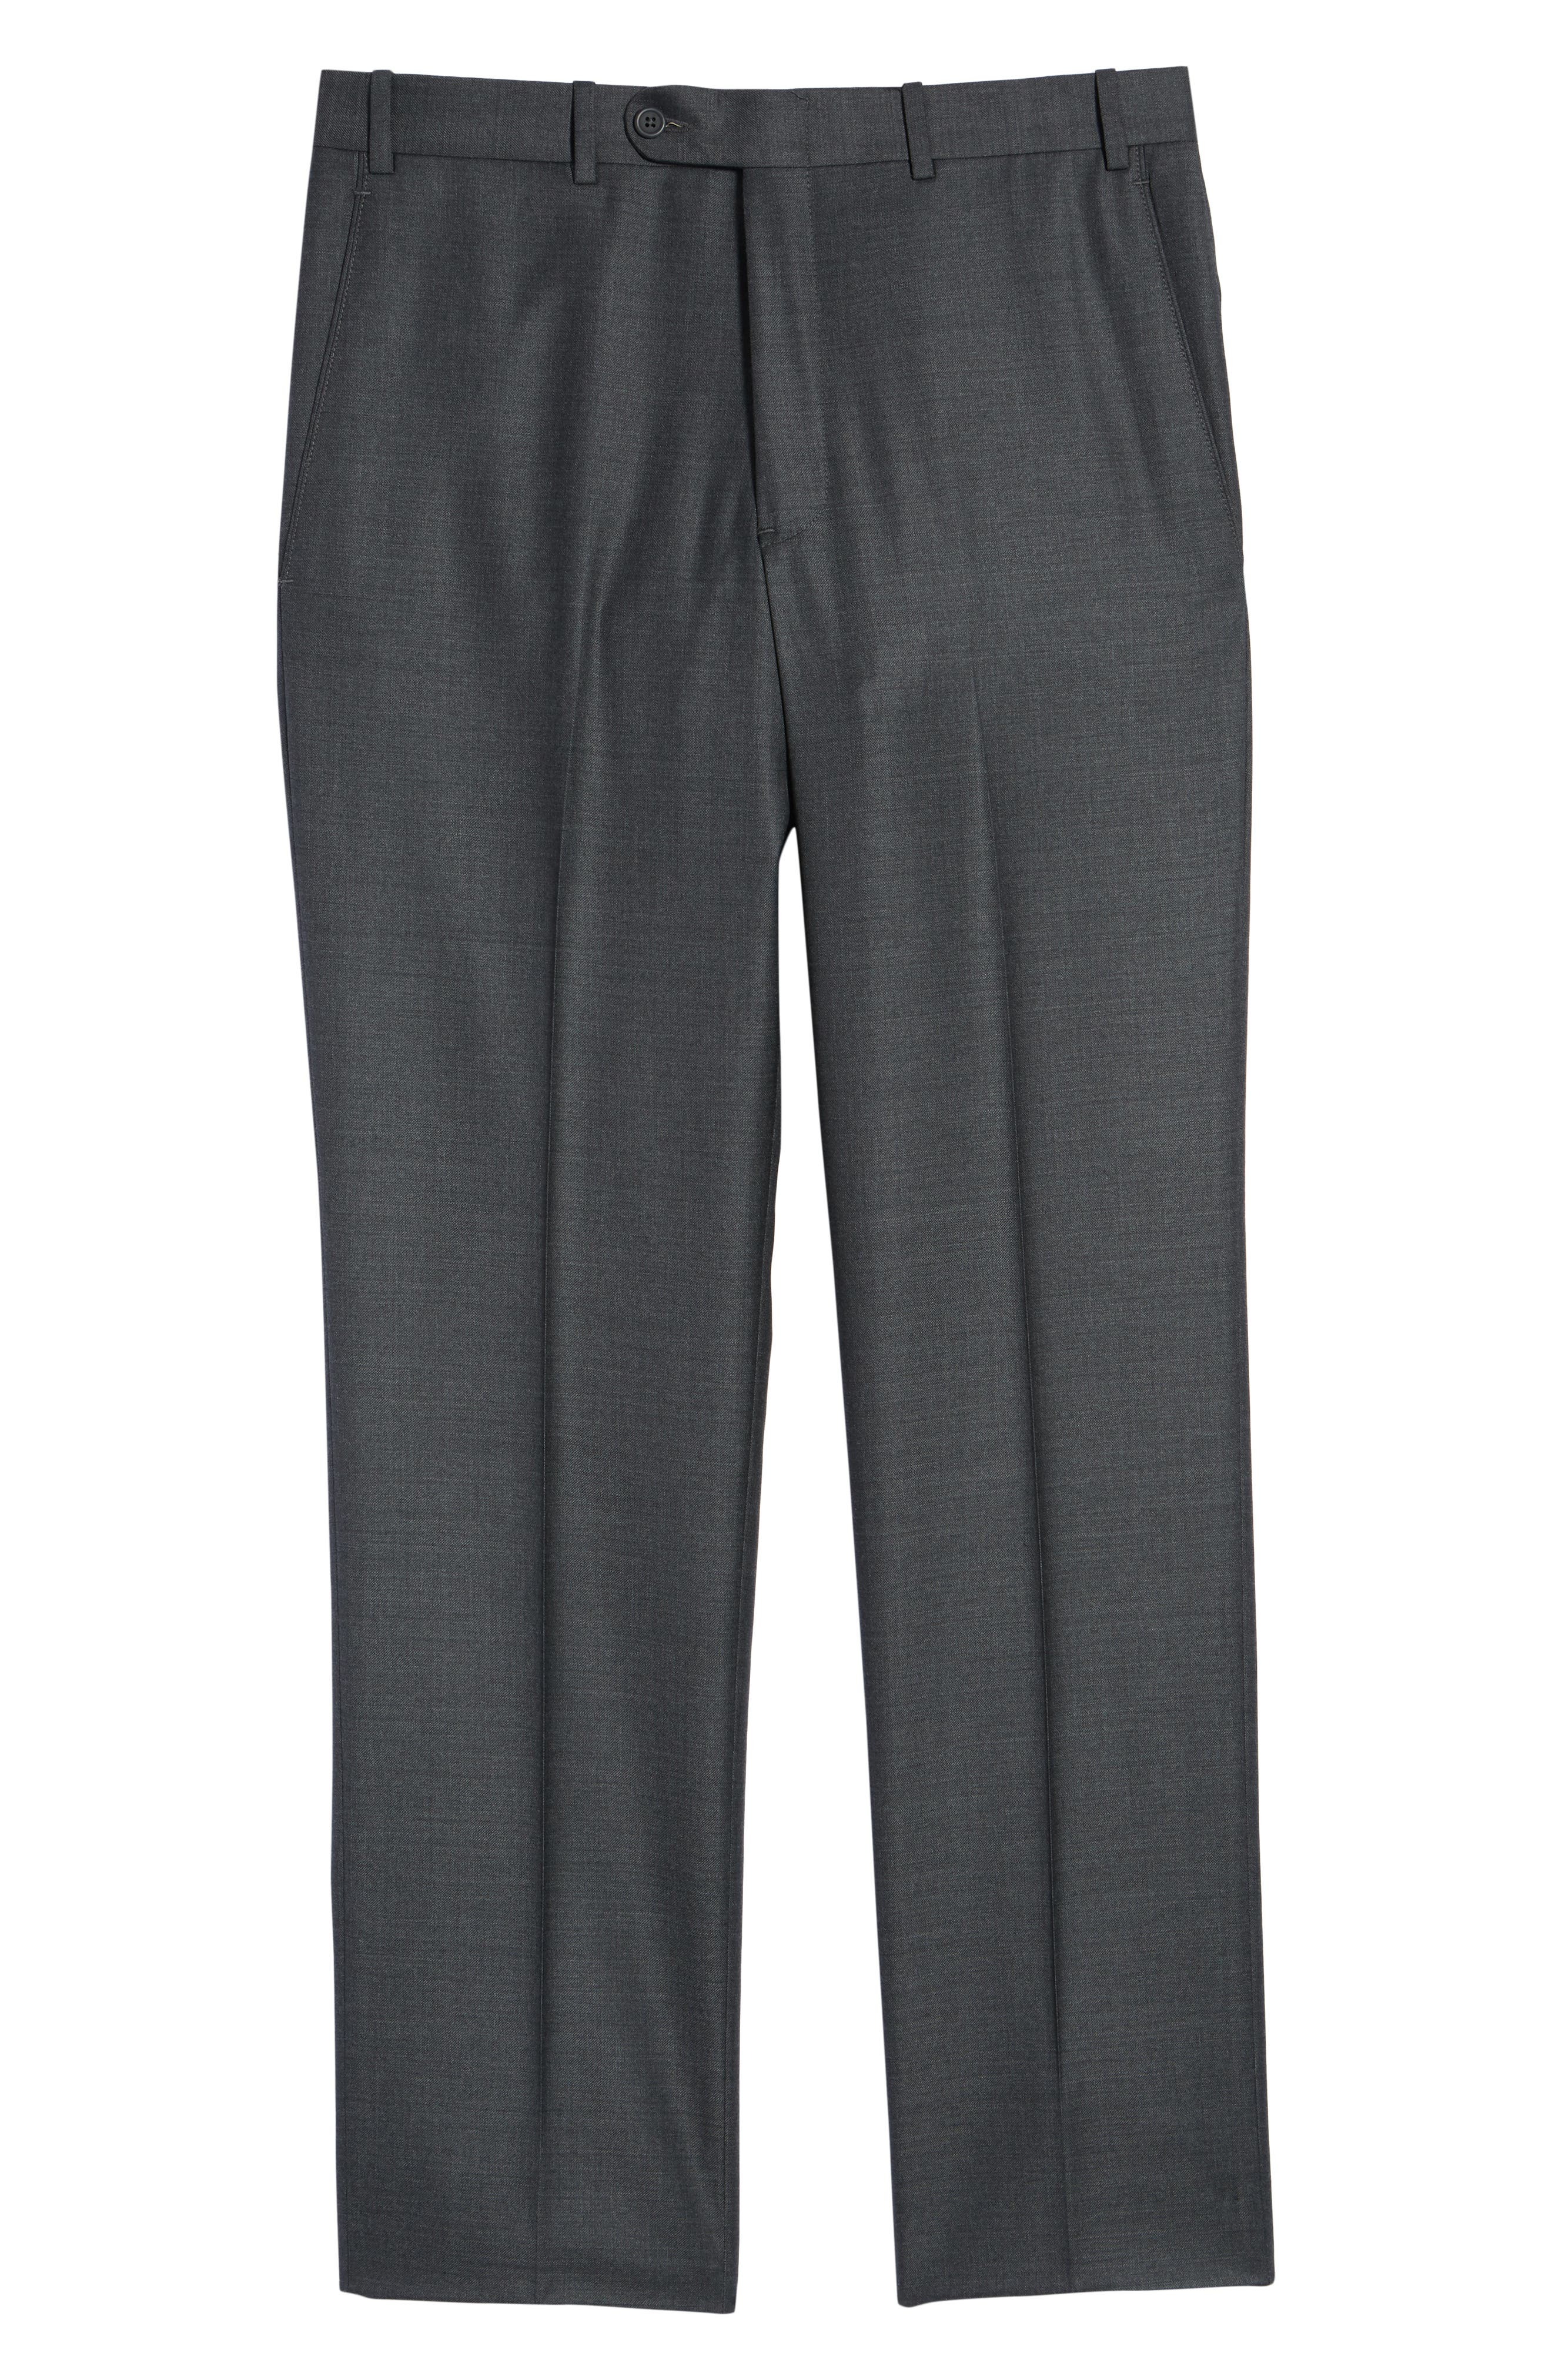 Torino Flat Front Solid Wool Trousers,                             Alternate thumbnail 6, color,                             Charcoal